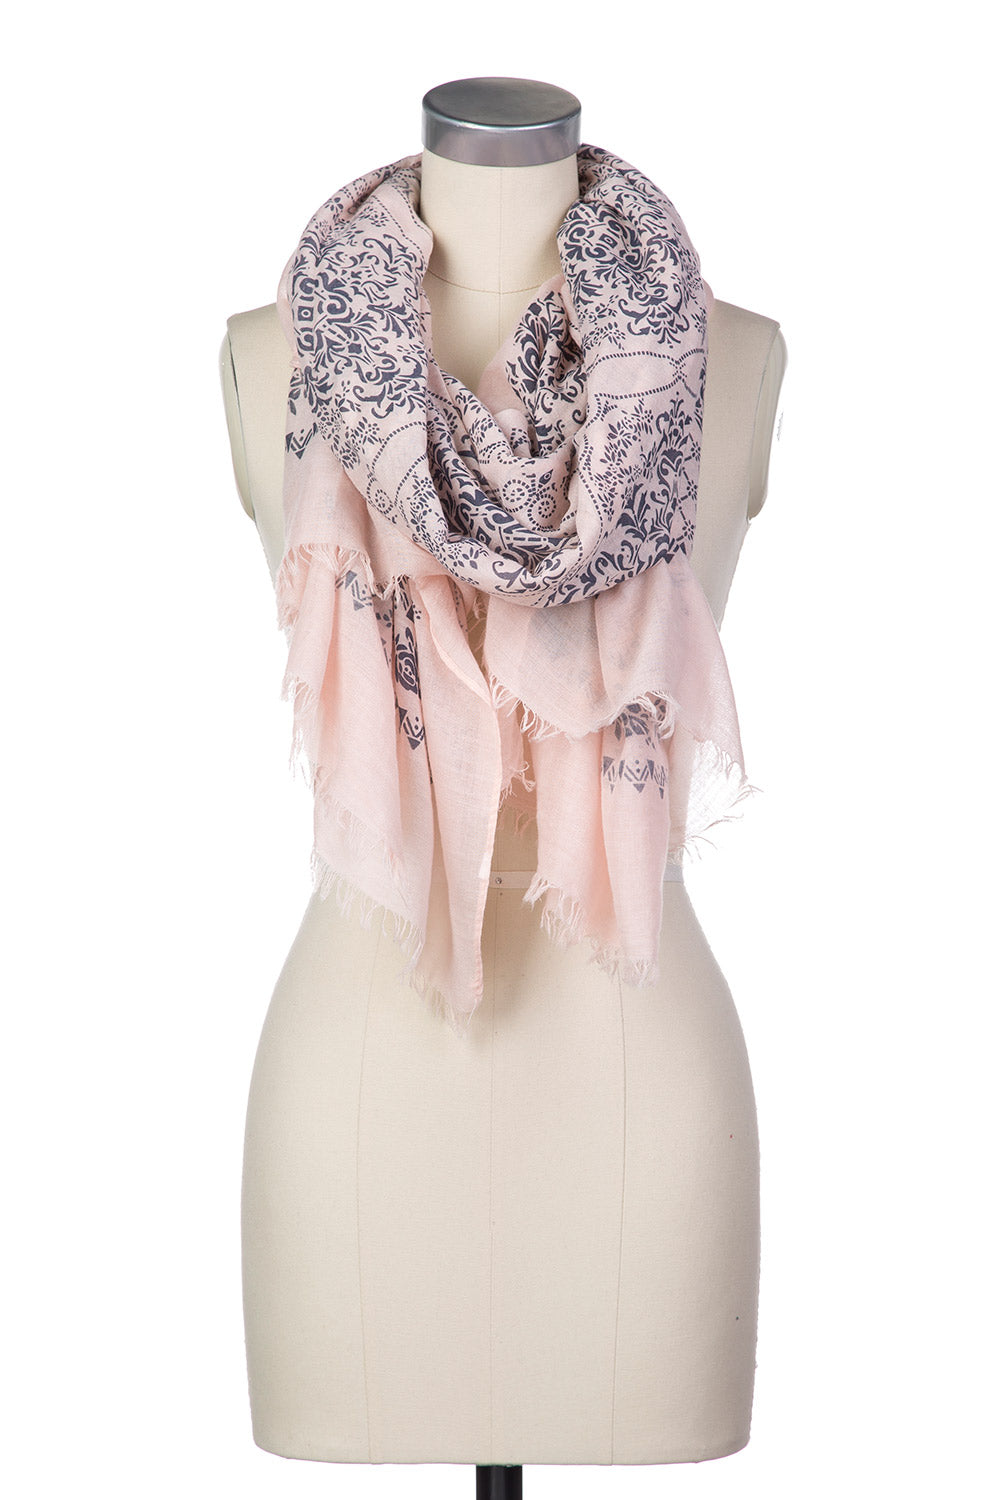 Type 2 Arabesque Scarf